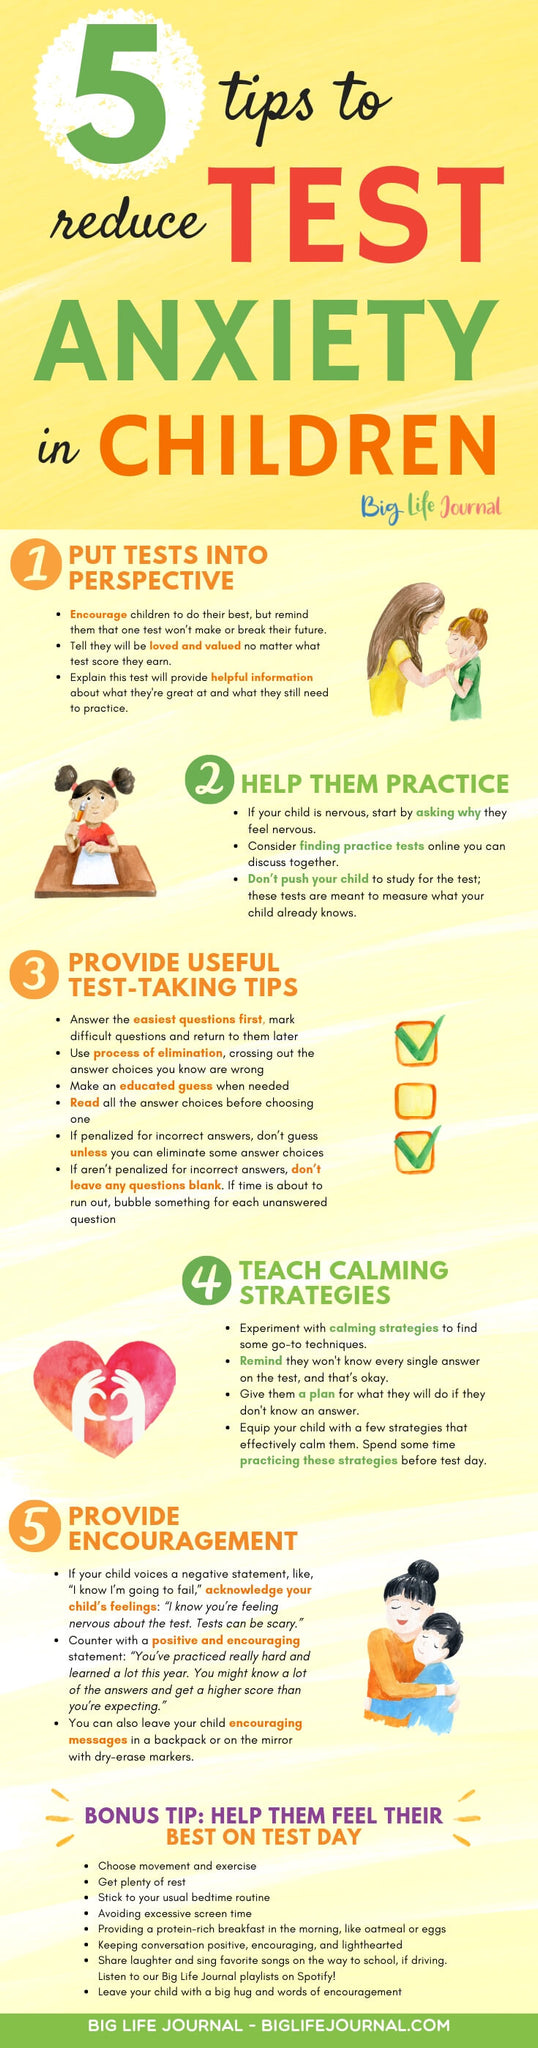 photo about Encouraging Notes for Students During Testing Printable titled 5 Ideas towards Stop Try Stress in just Small children Significant Daily life Magazine